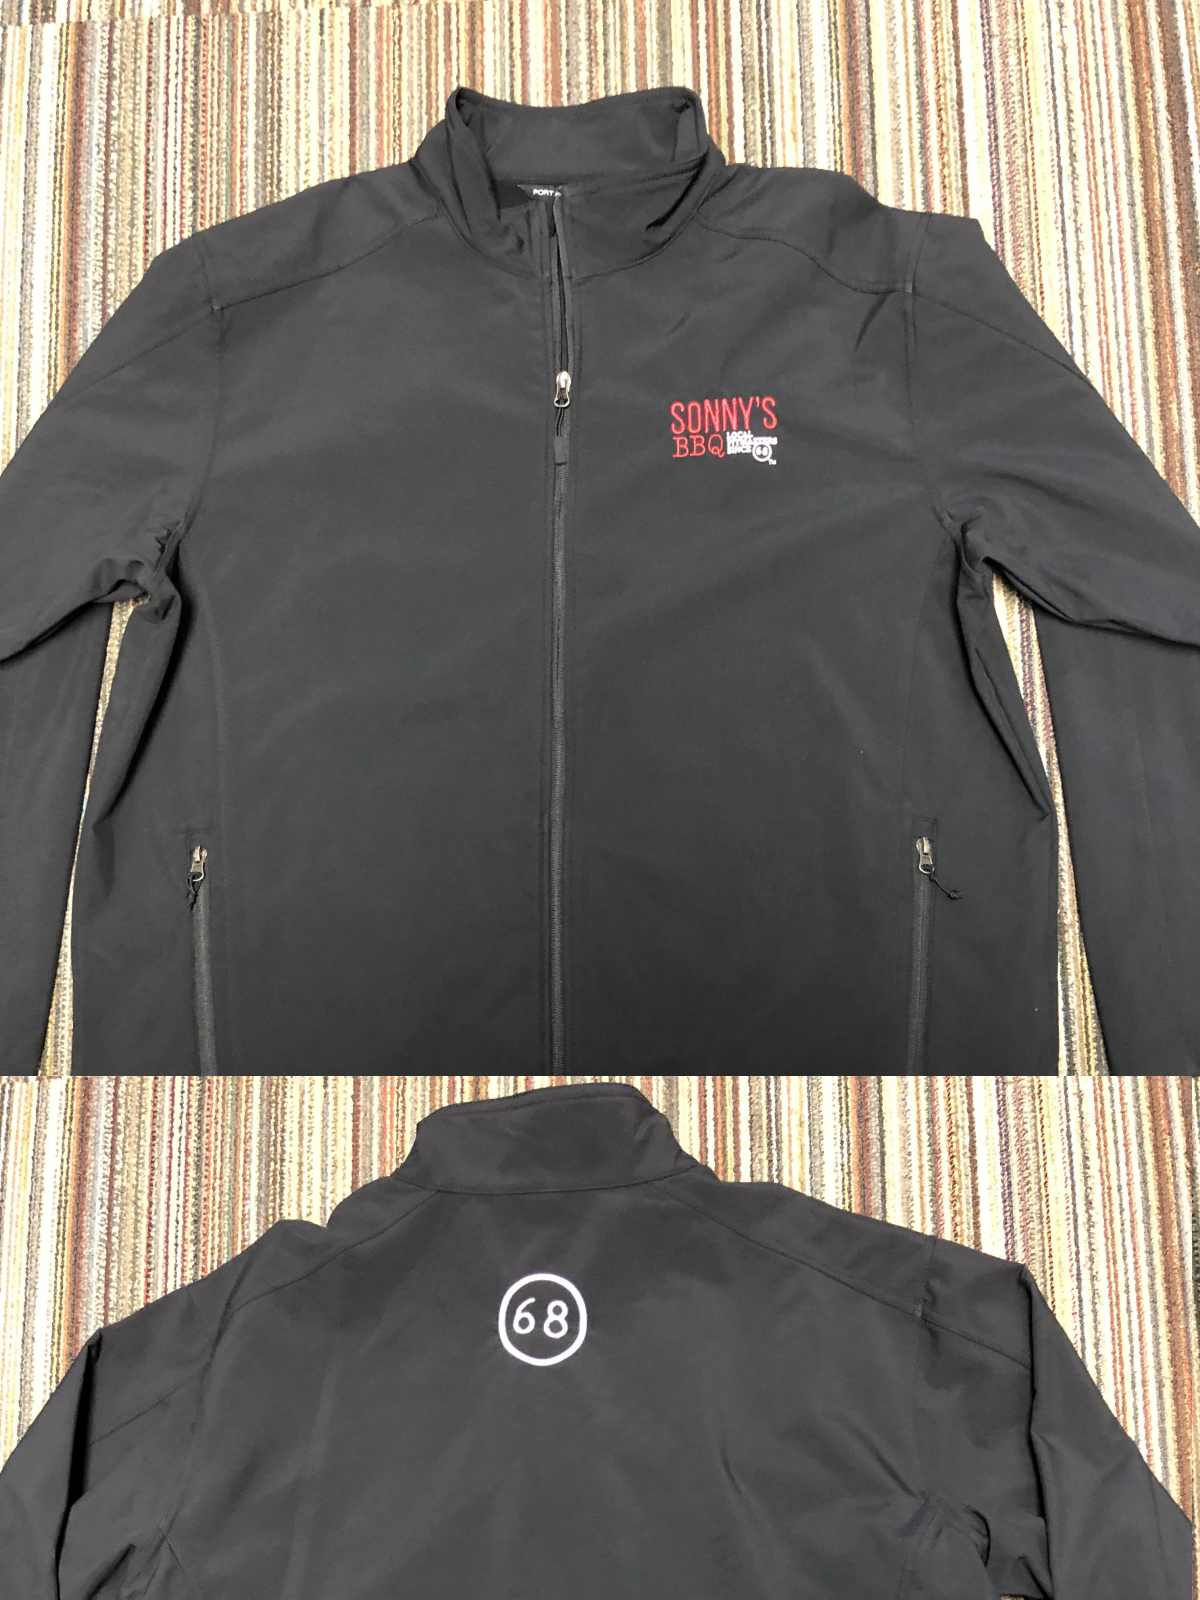 Sonny's – Men's Softshell Jacket: Core Soft Shell Jacket. J317 – Black, Battleship Grey, Deep Smoke, & Rich Red